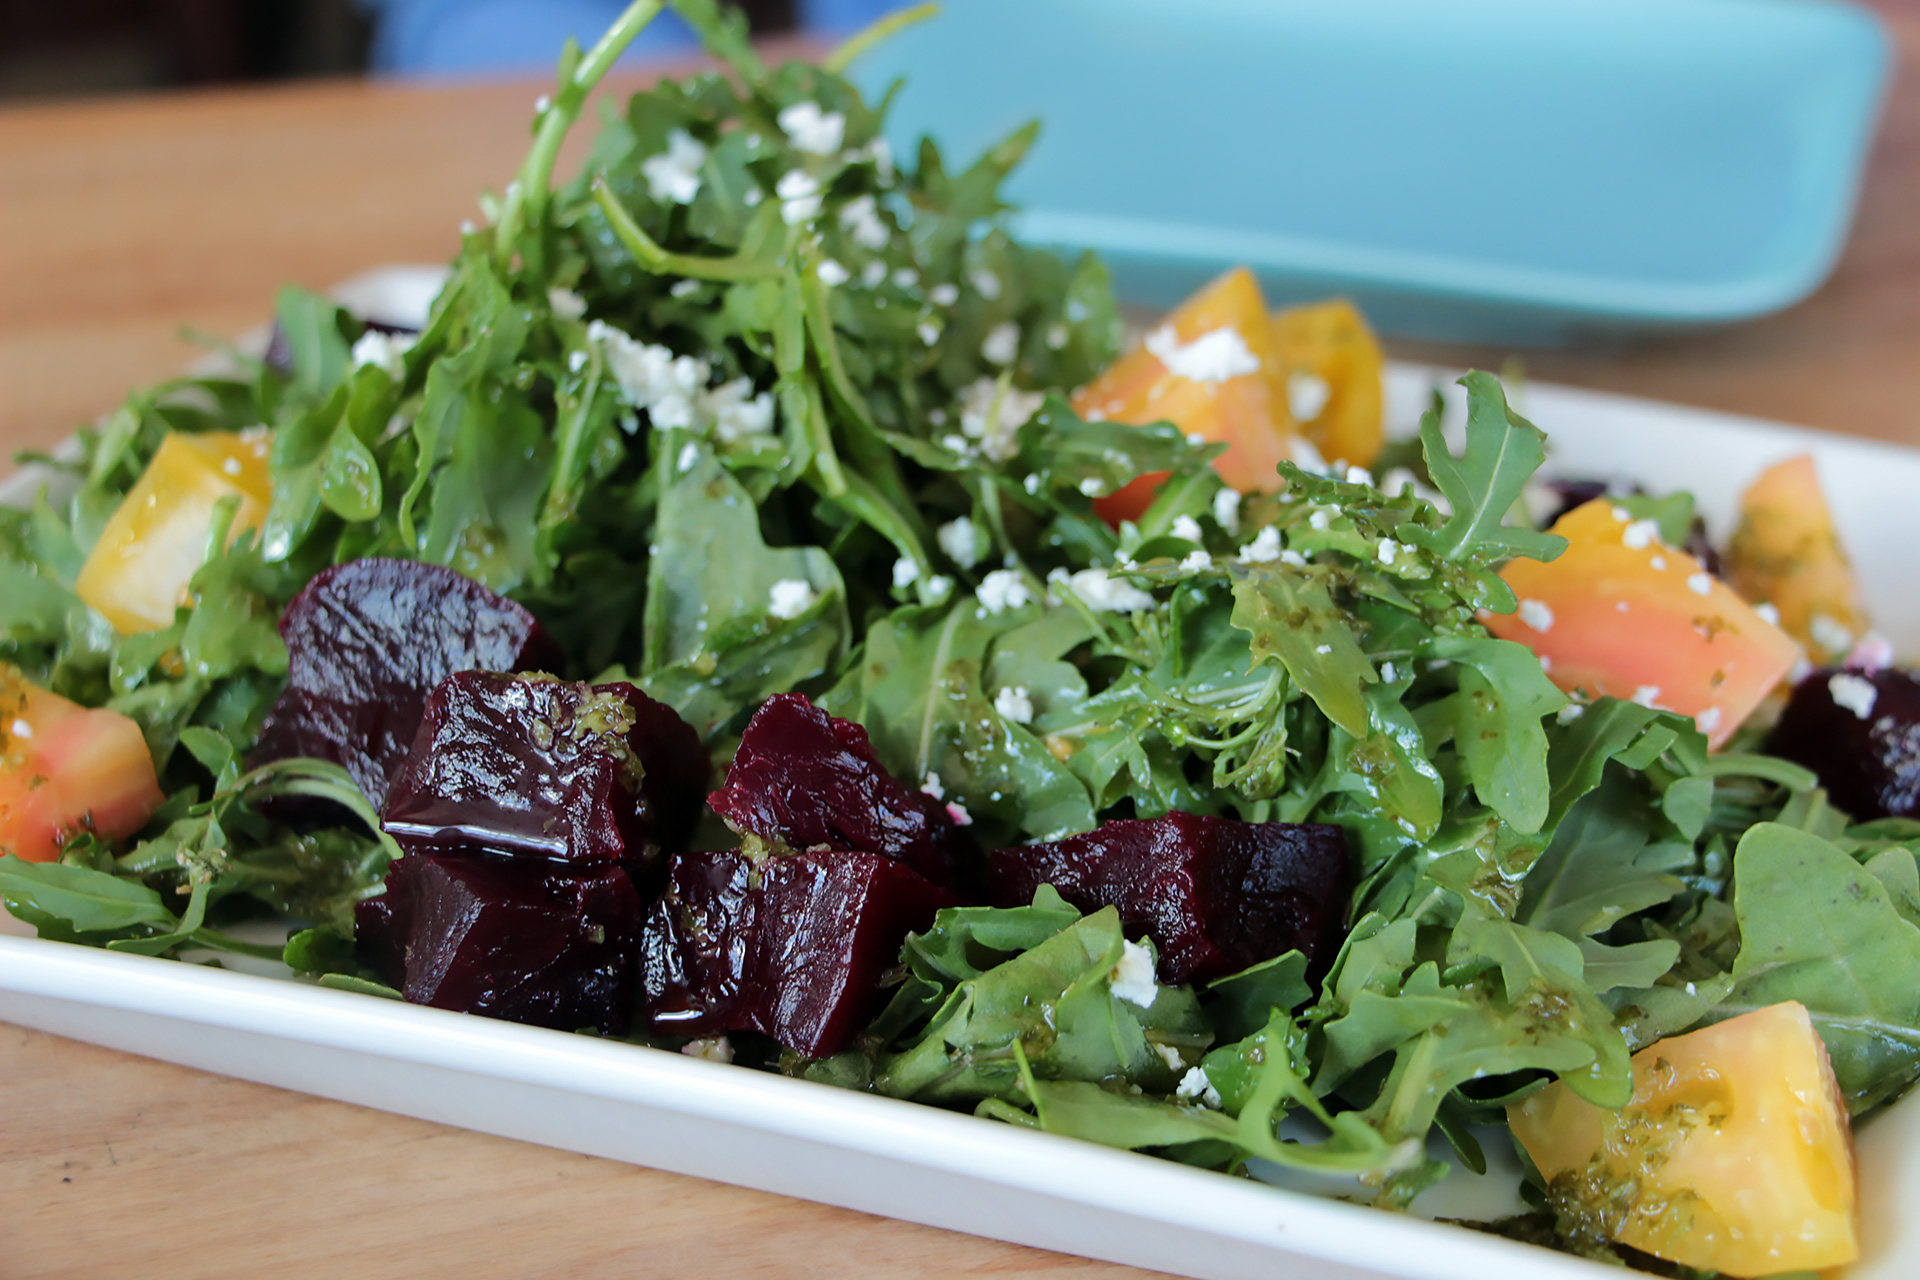 Arugula salad with roasted beets, early summer tomatoes, scattered goat cheese and a pesto sauce.